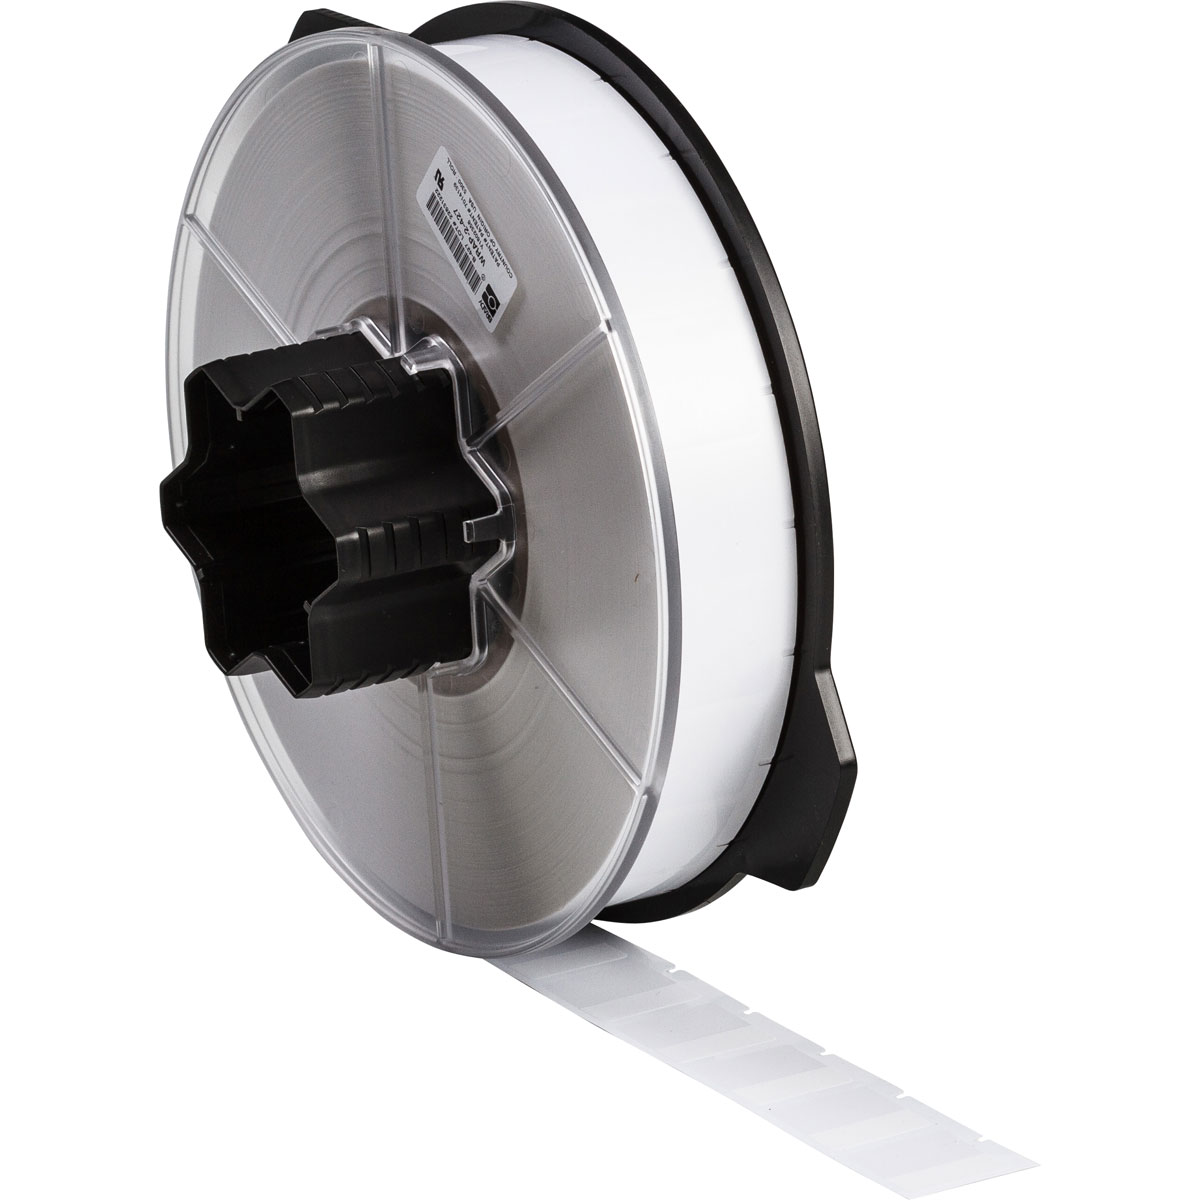 Wraptor Self-Laminating Vinyl Wire and Cable Labels